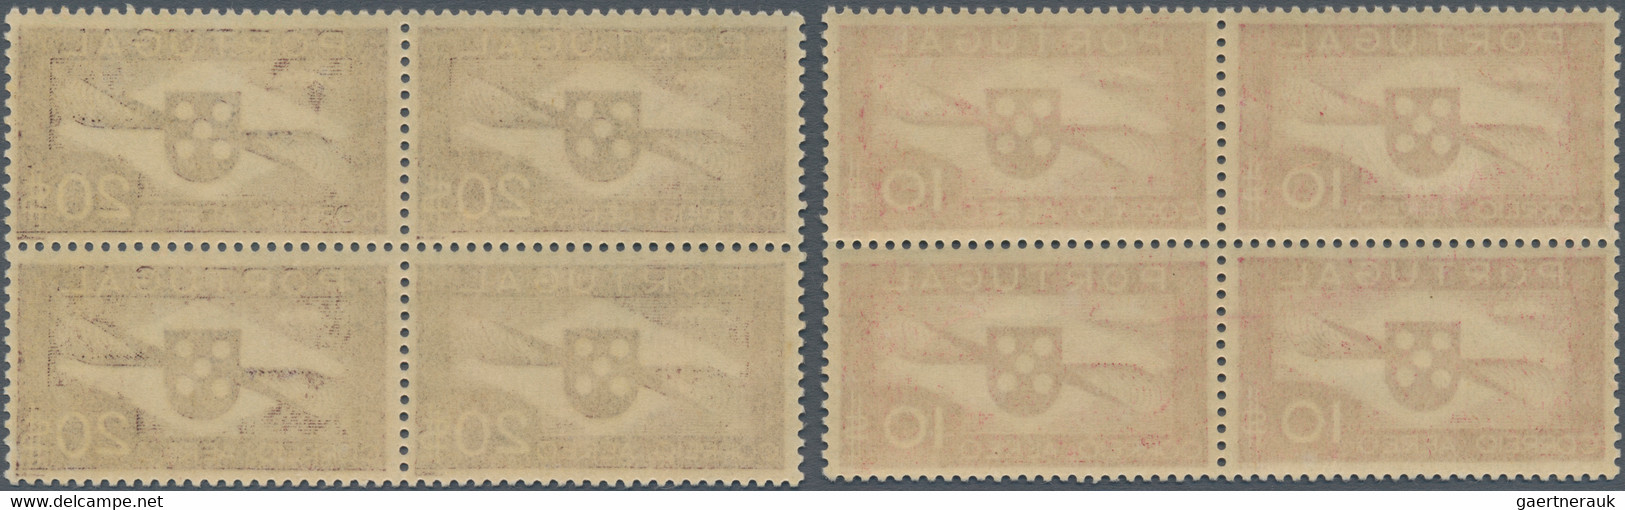 Portugal: 1936 - 1941, 1,50 To 50 E Airmail Issue, Complete Set In Blocks Of Four Mint Never Hinged, - Nuevos